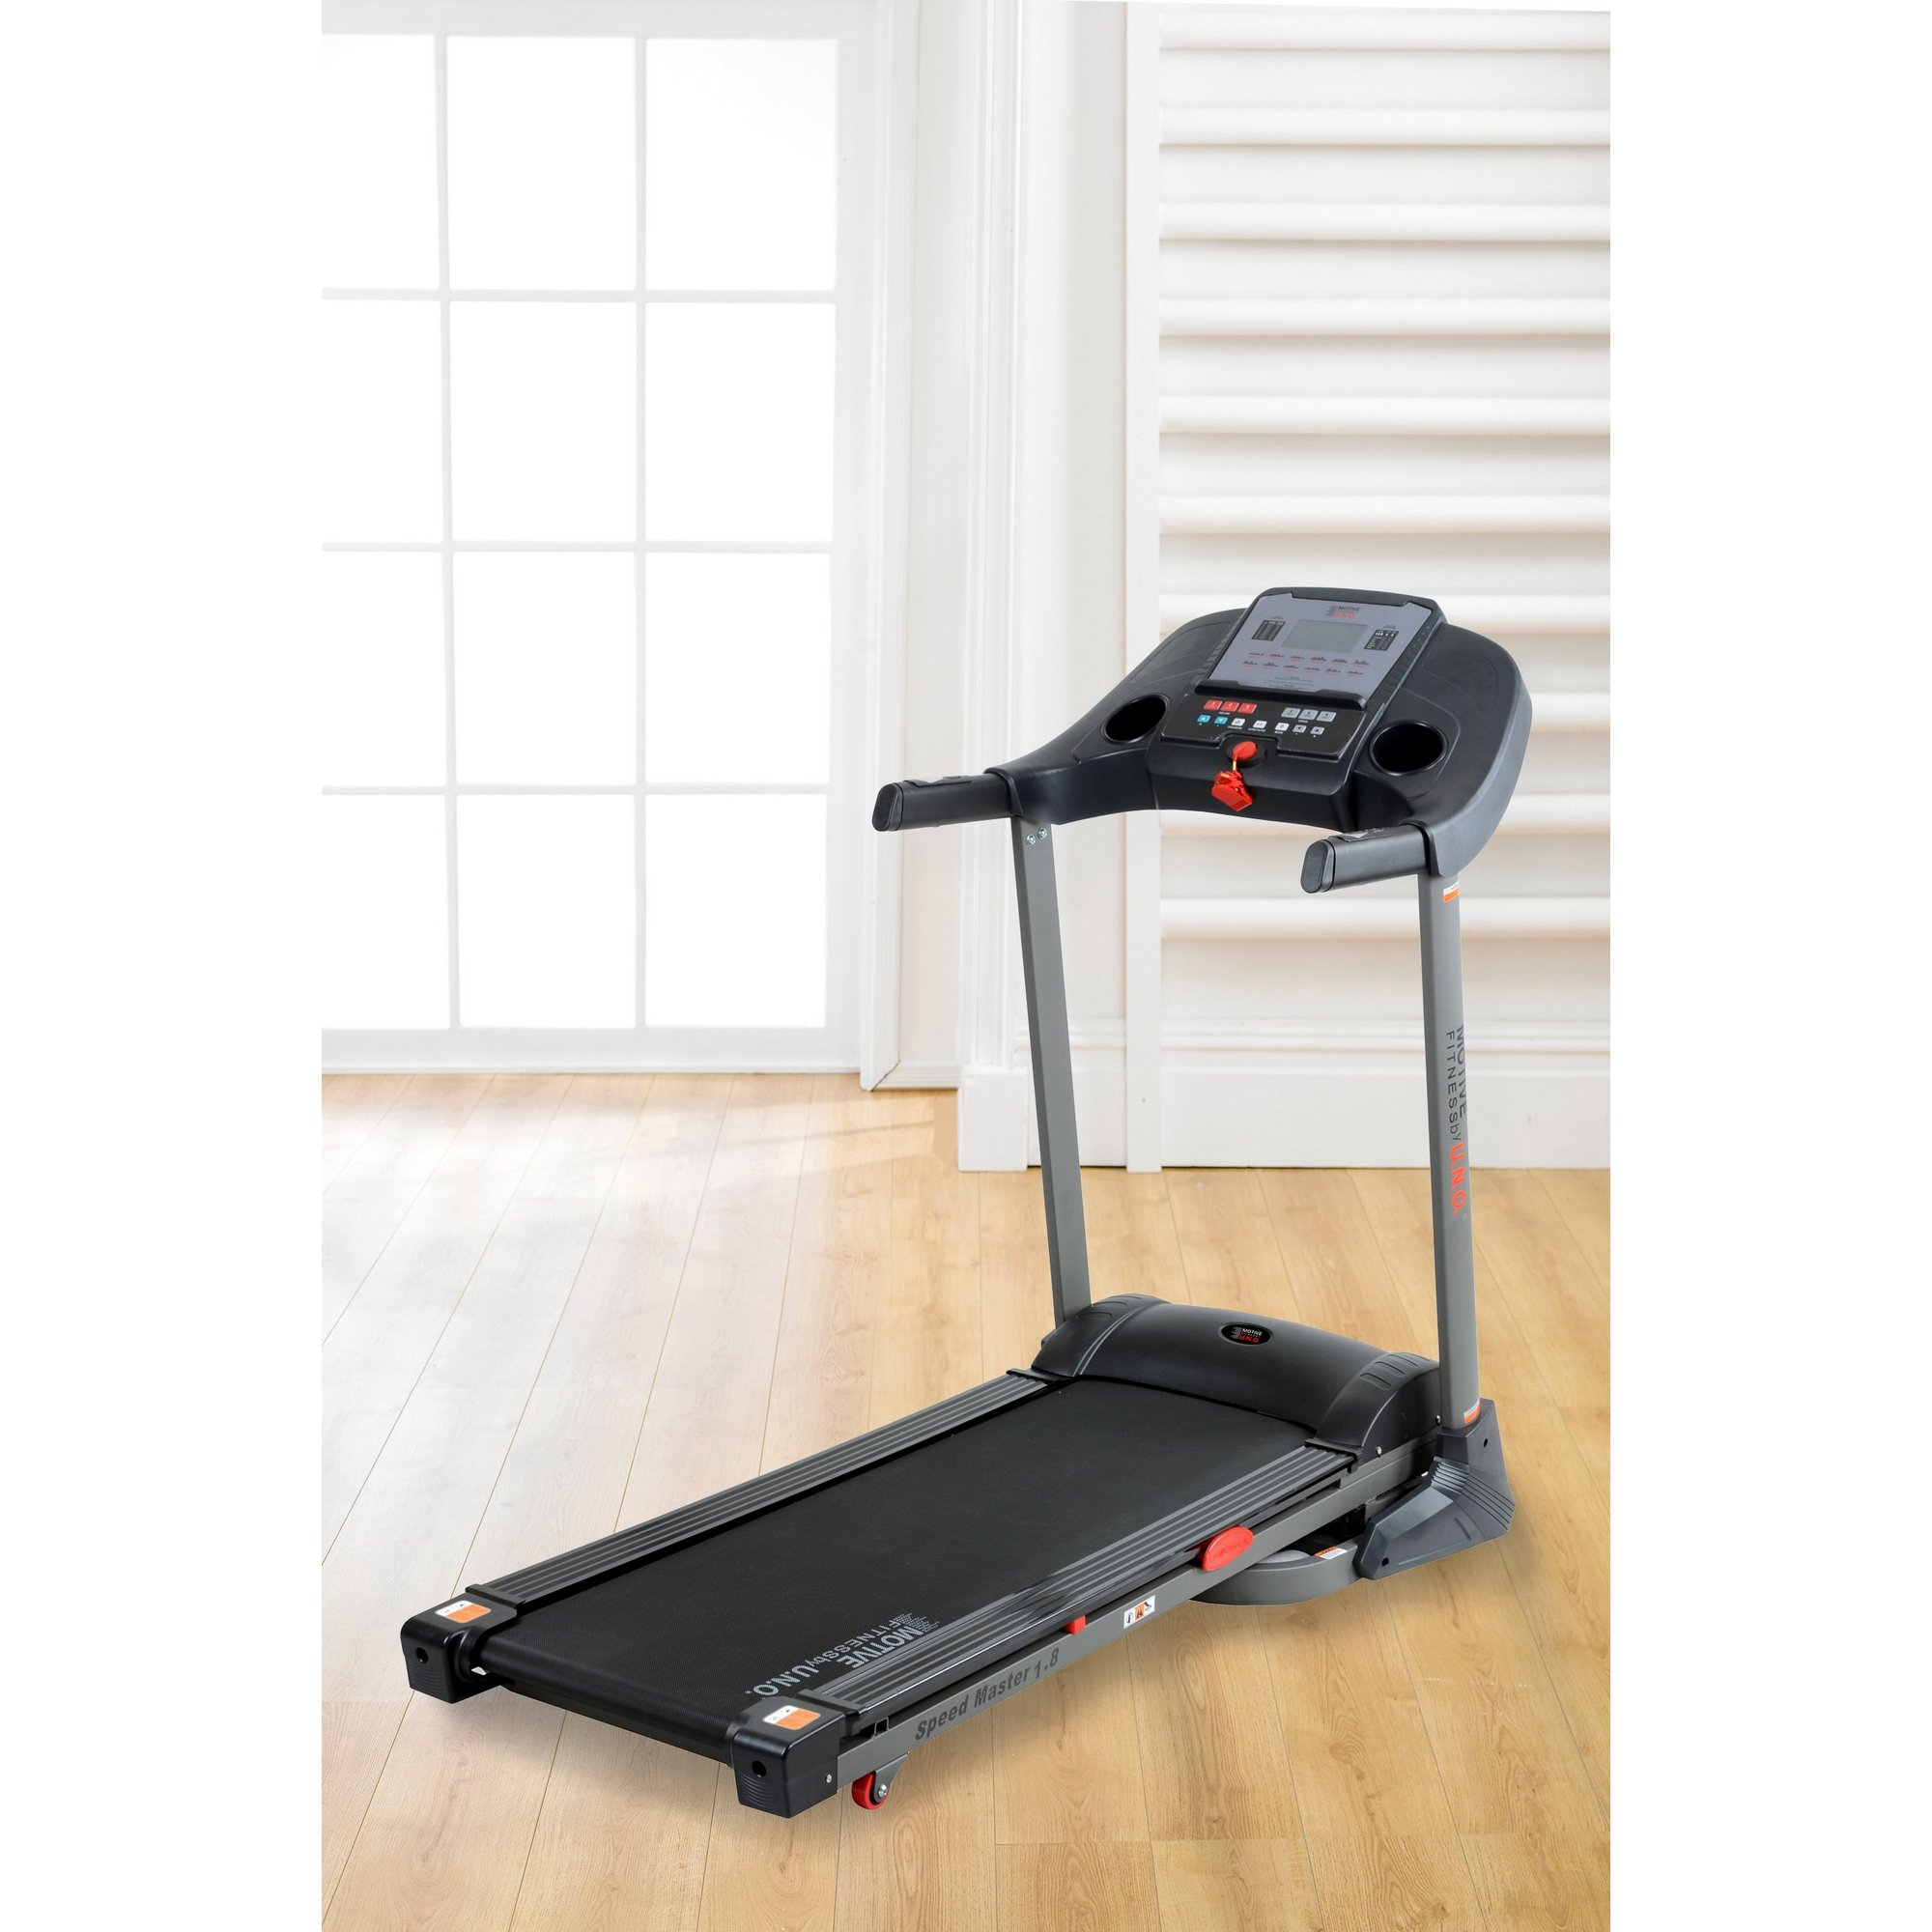 Image of Motive Fitness By Uno Speed Master 1.8P Treadmill